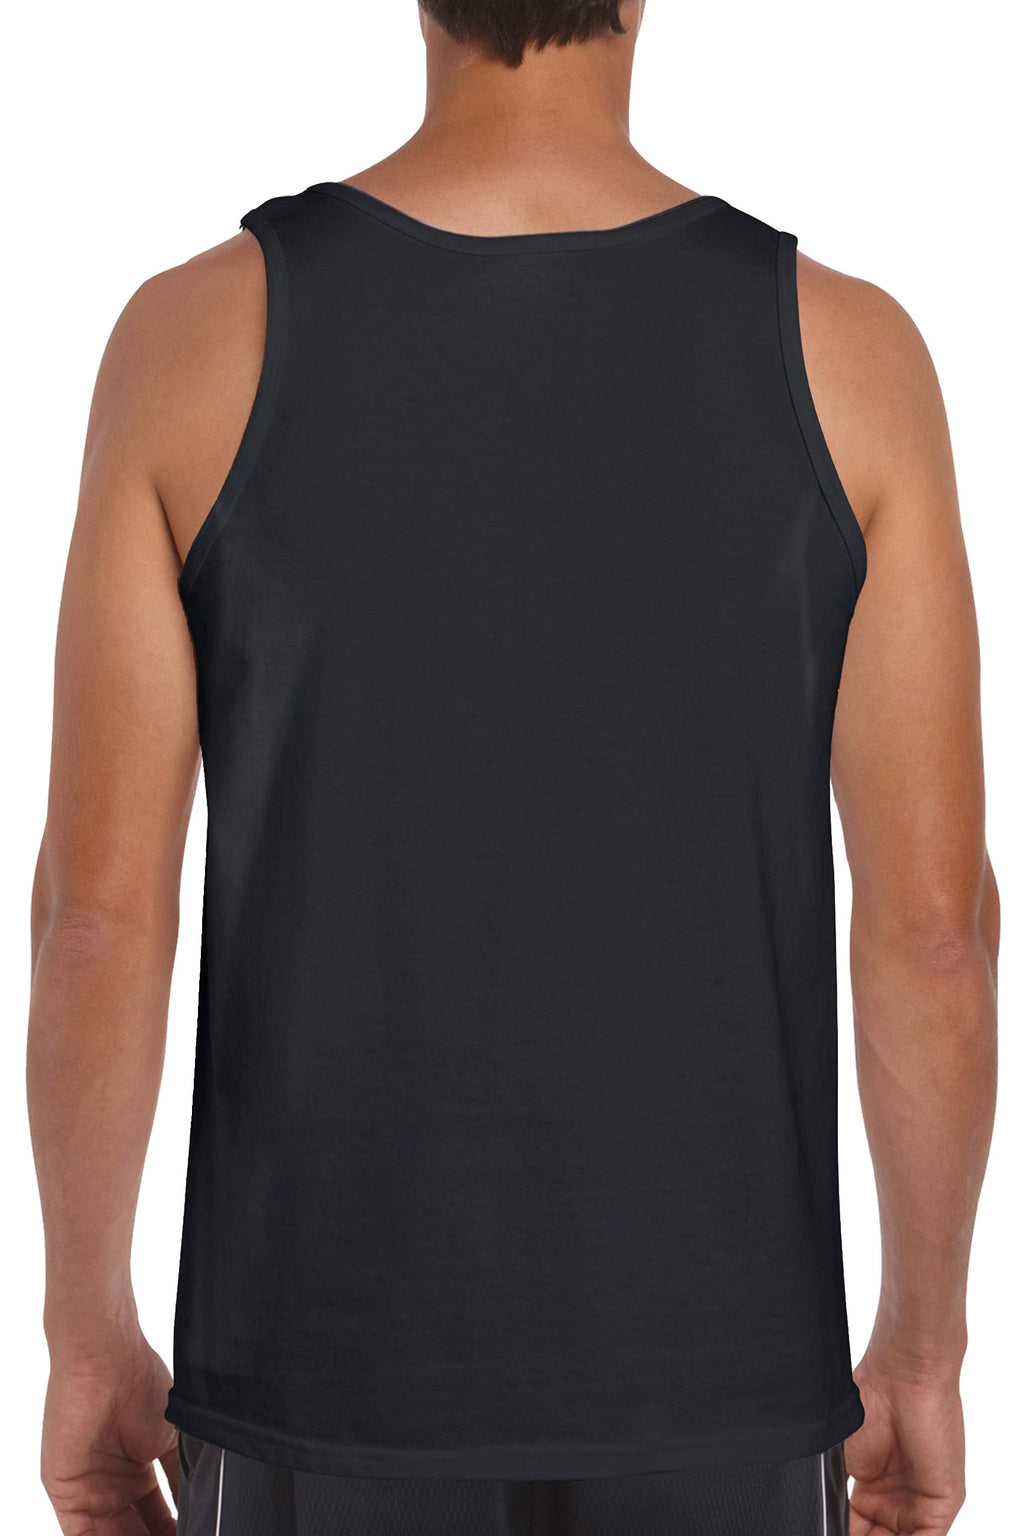 Men's Good Morning! Now Put it in Your Mouth Tank Top Shirt